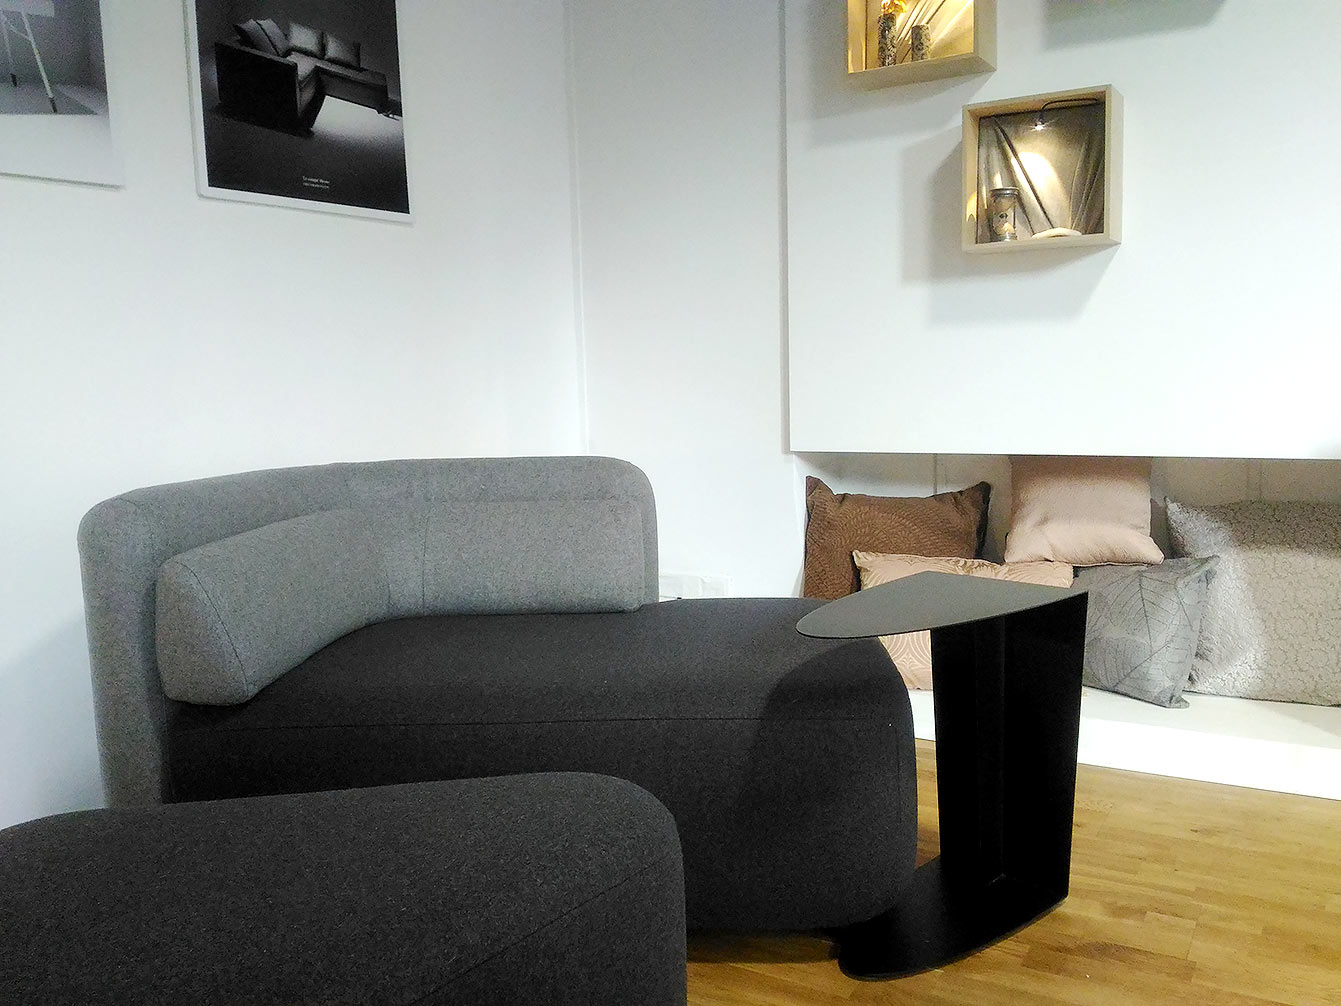 d co nouvelle collection automne hiver de boconcept. Black Bedroom Furniture Sets. Home Design Ideas